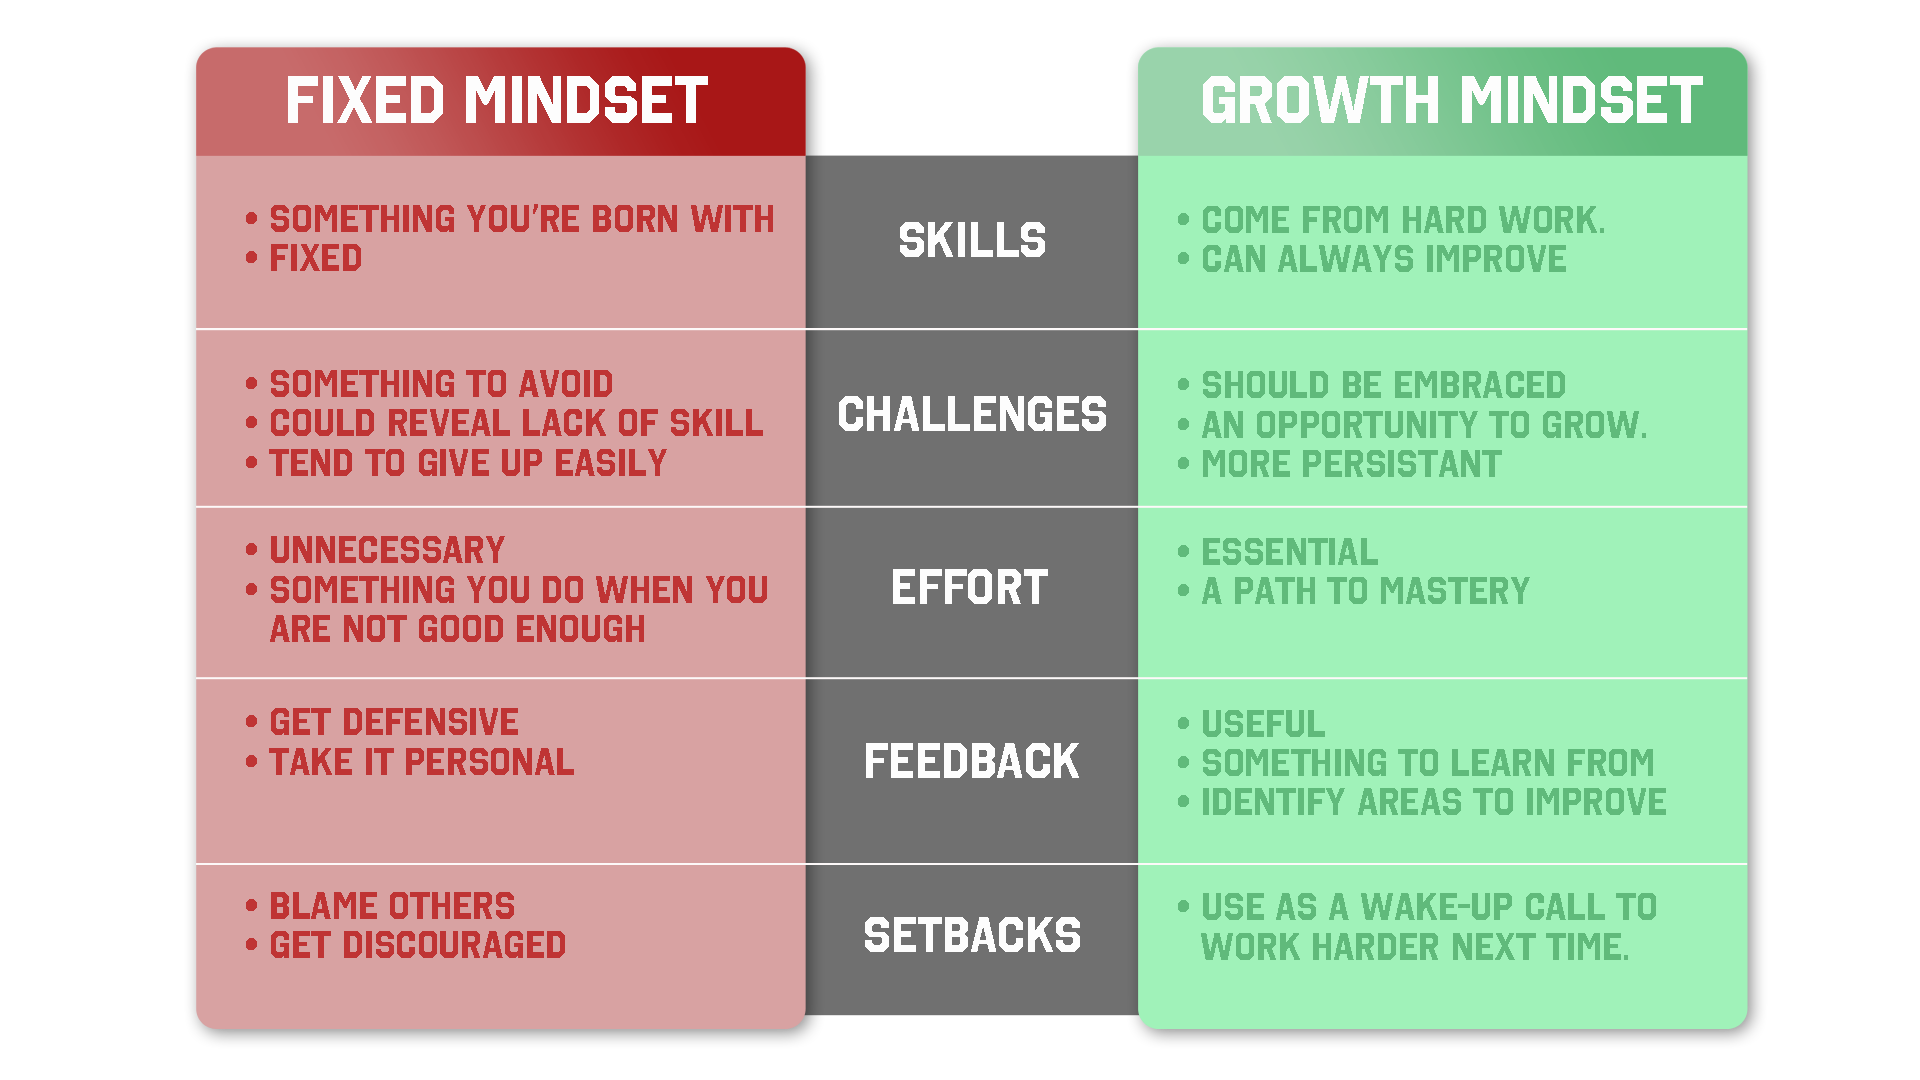 "Source: Dweck, Carol. ""Fixed Mindset vs. Growth Mindset.""  Rio School District , Rio School District, Oxnard California, rioschools.org/blog/fixed-mindset-vs-growth-mindset/."